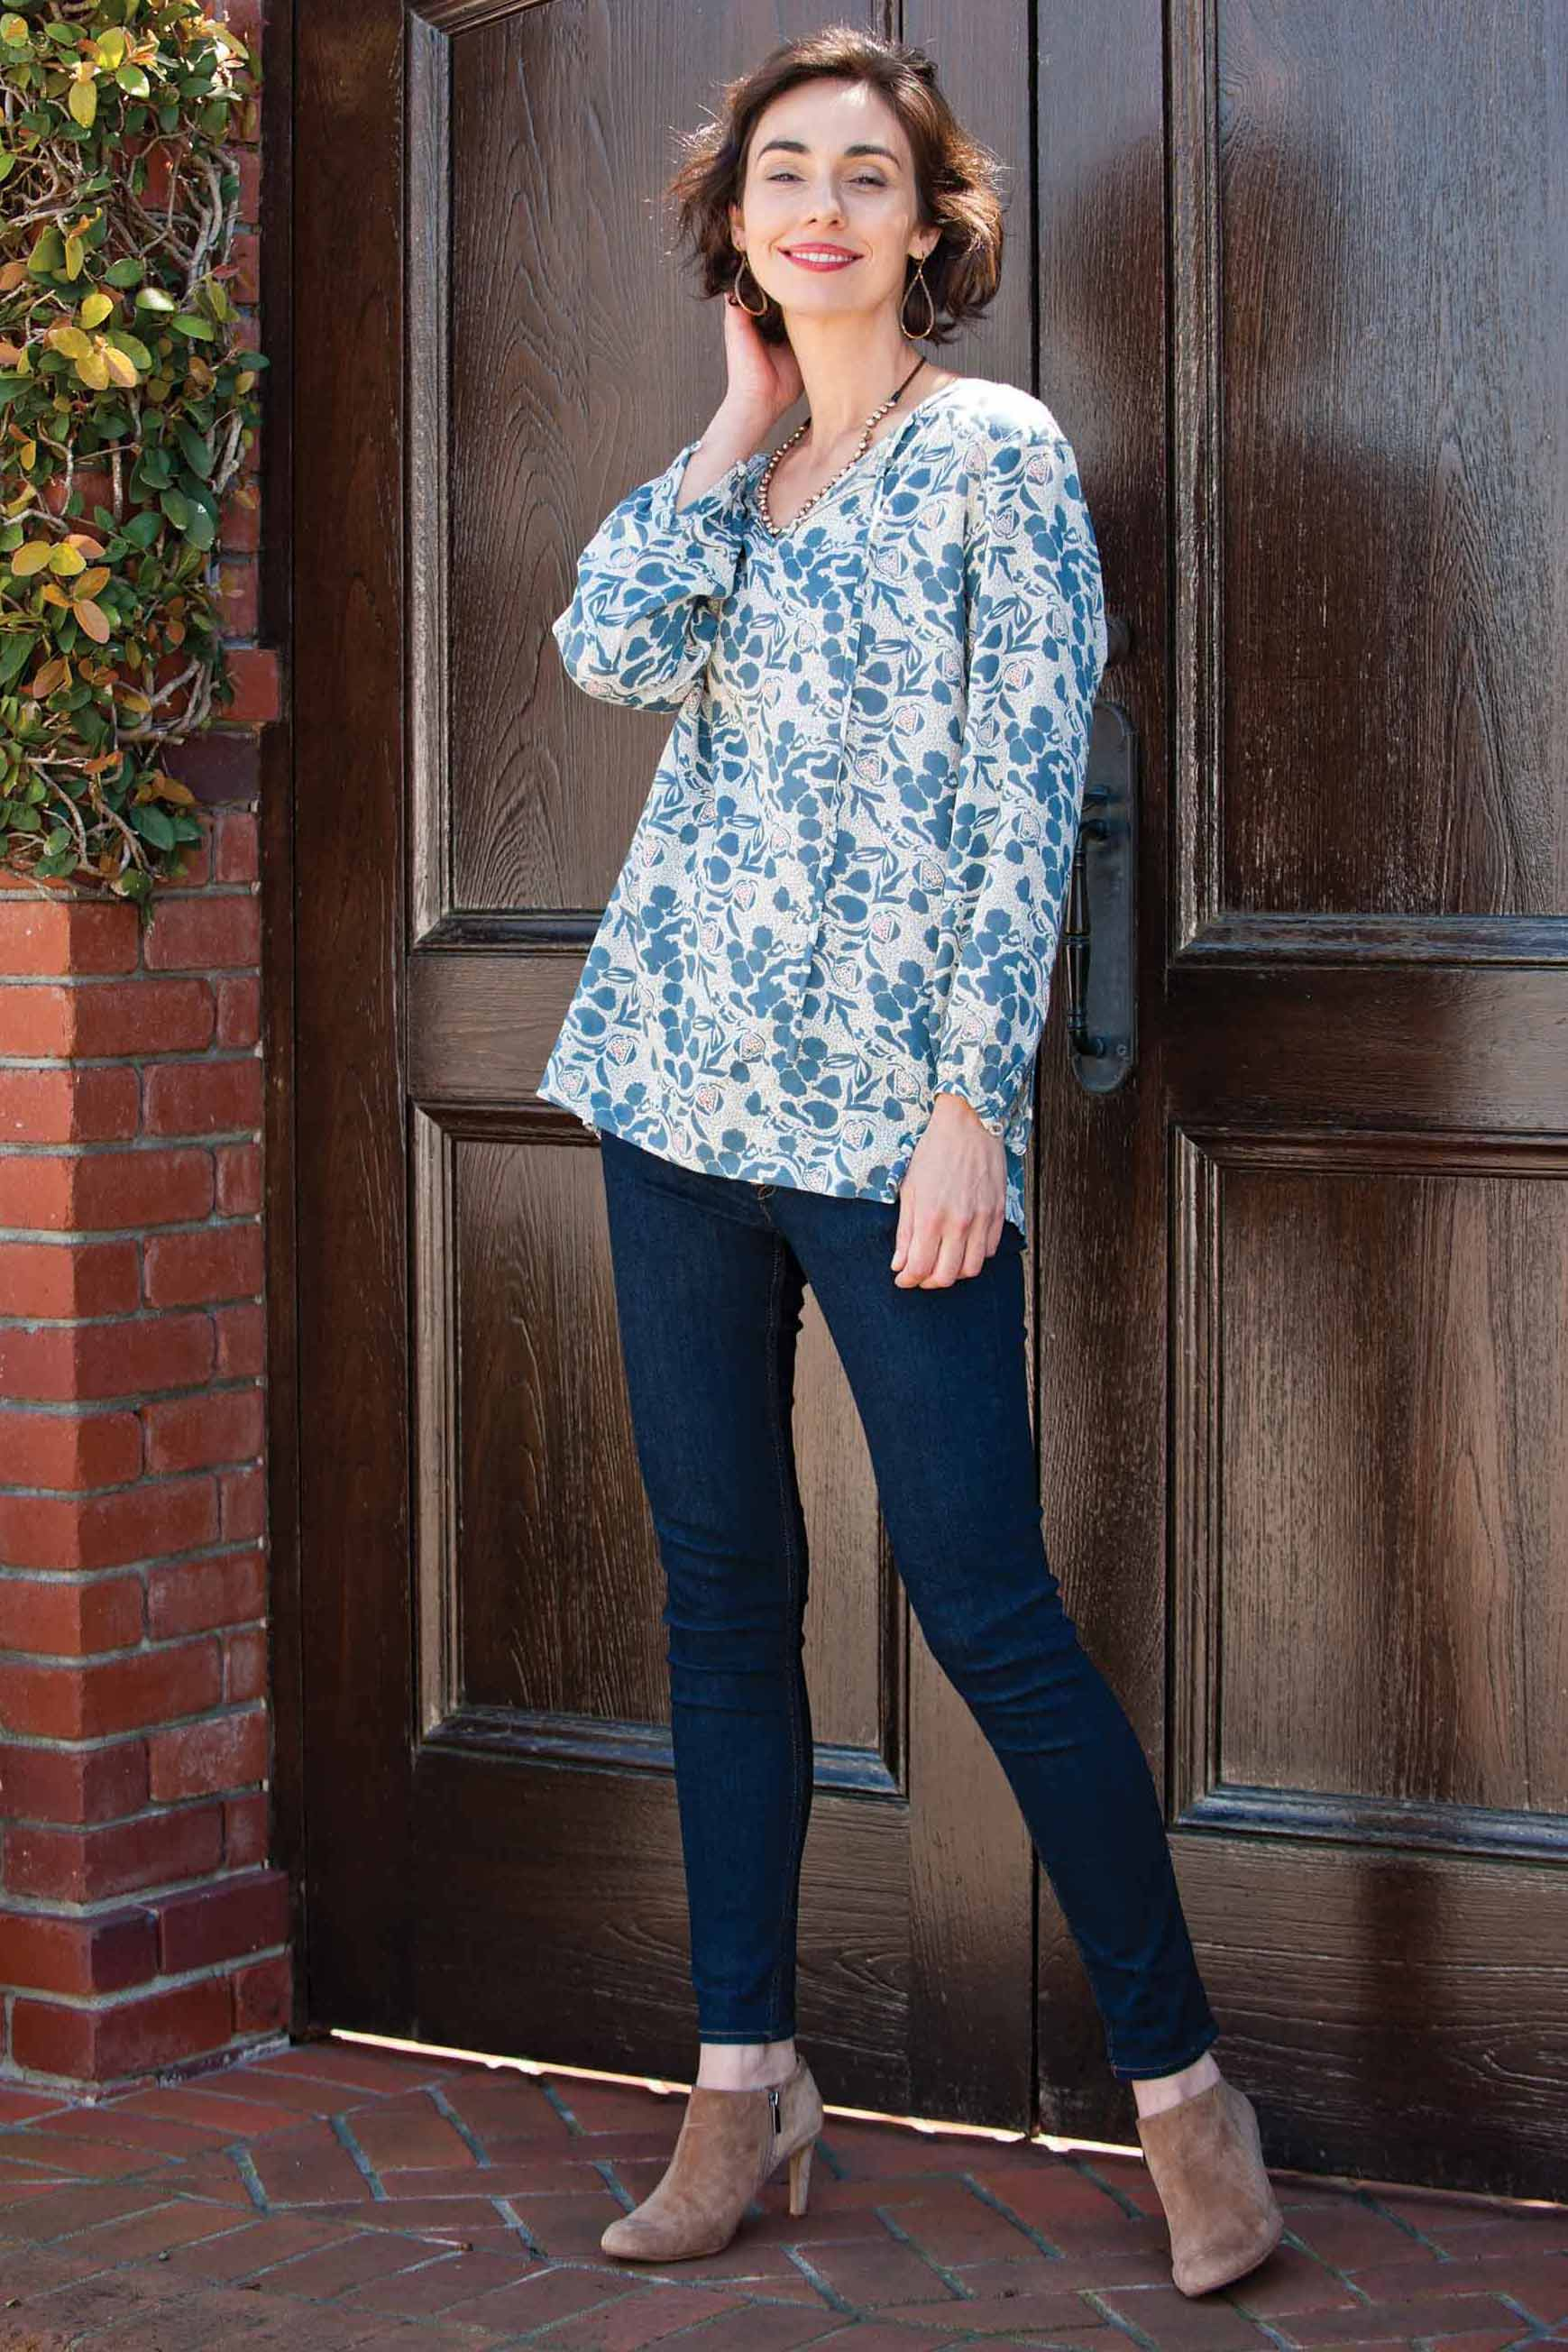 woman wearing white and blue peasant top with floral print